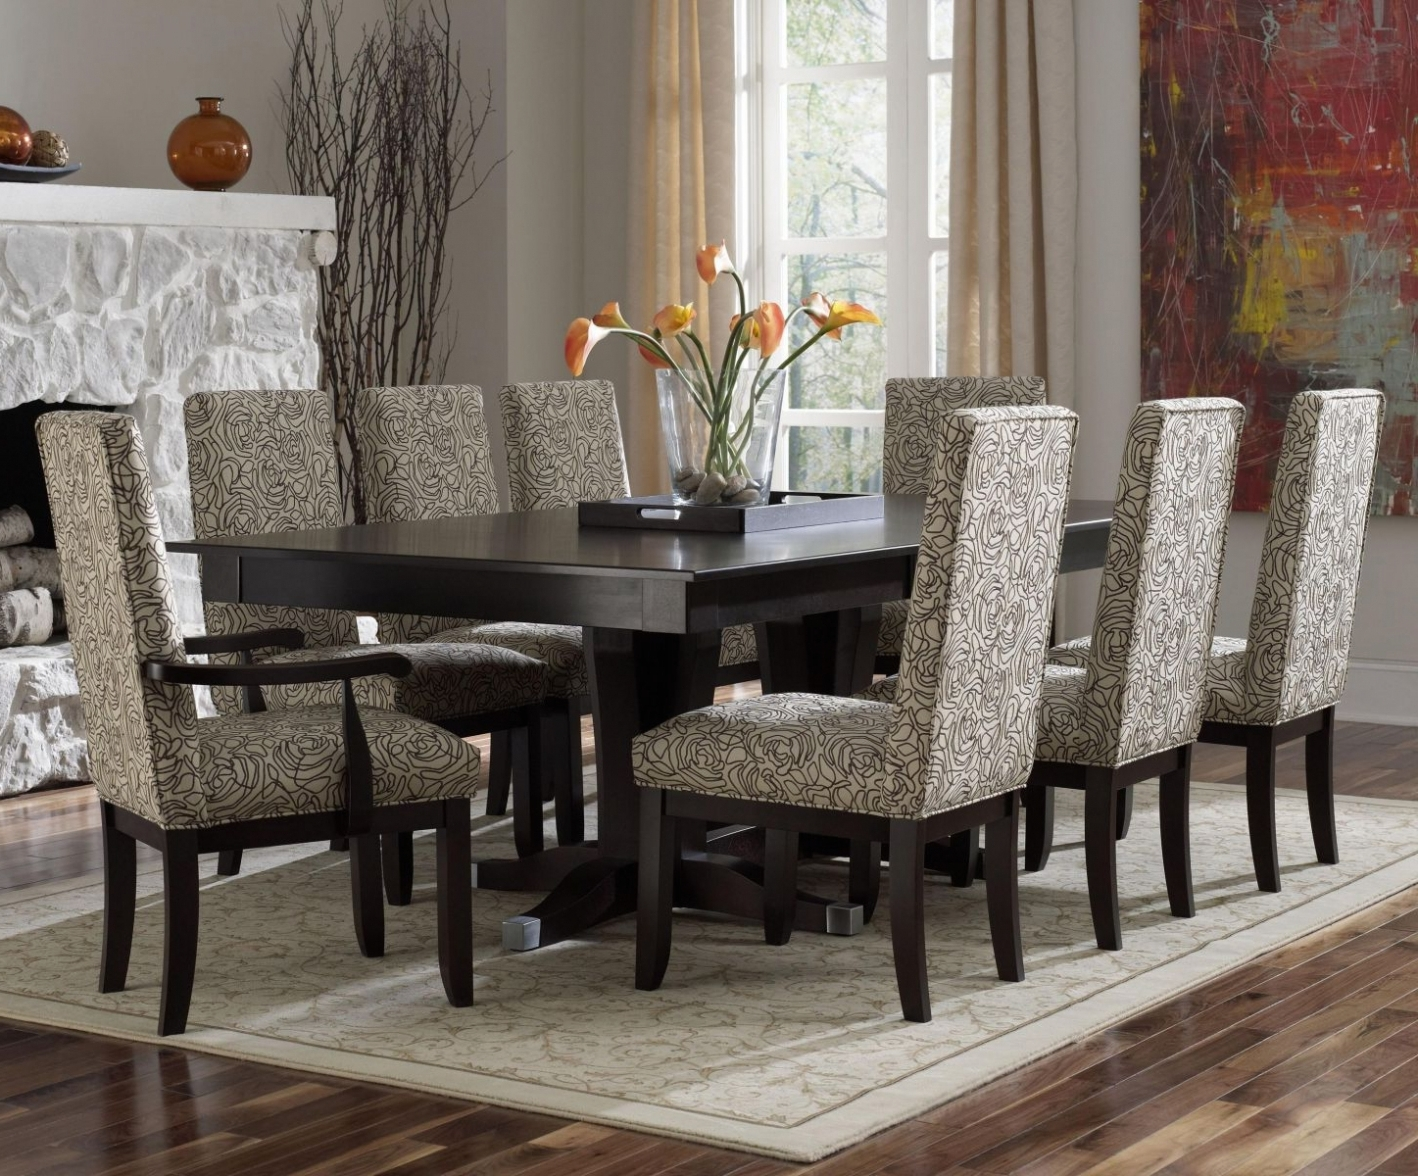 Glasgow Dining Sets Throughout Well Known Furnitures: Dining Room Furniture : Dining Room Sets Dining Sets (View 5 of 25)